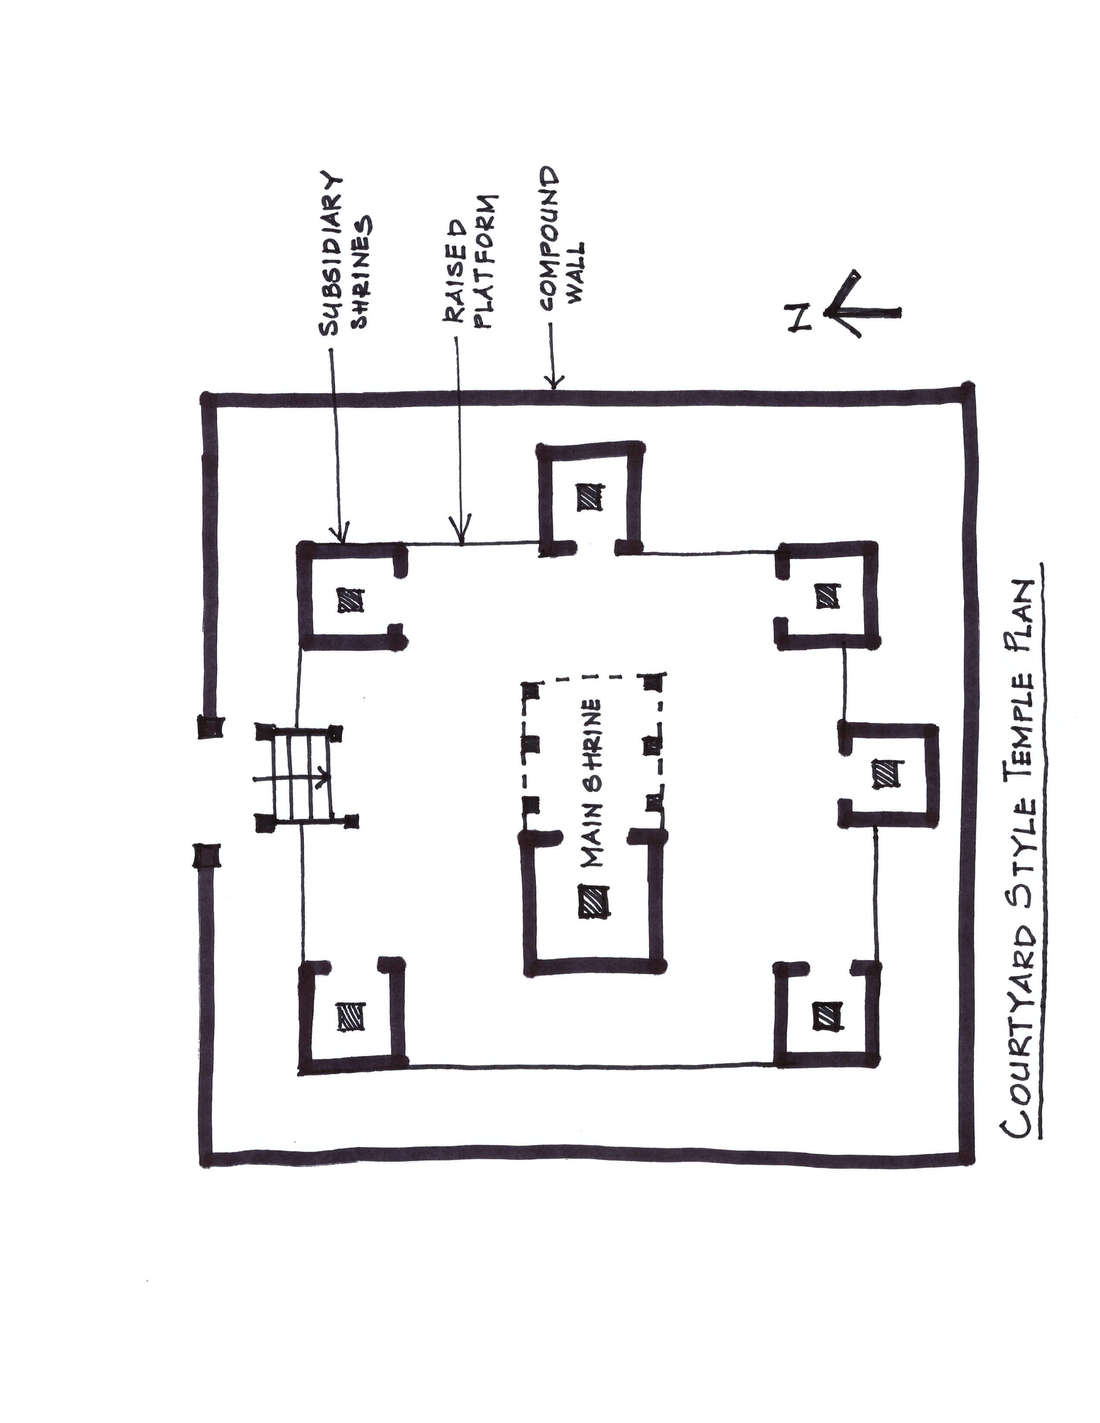 31-Traditional-Courtyard-Style-layout-for-a-Hindu-Temple-1100x1423.jpg